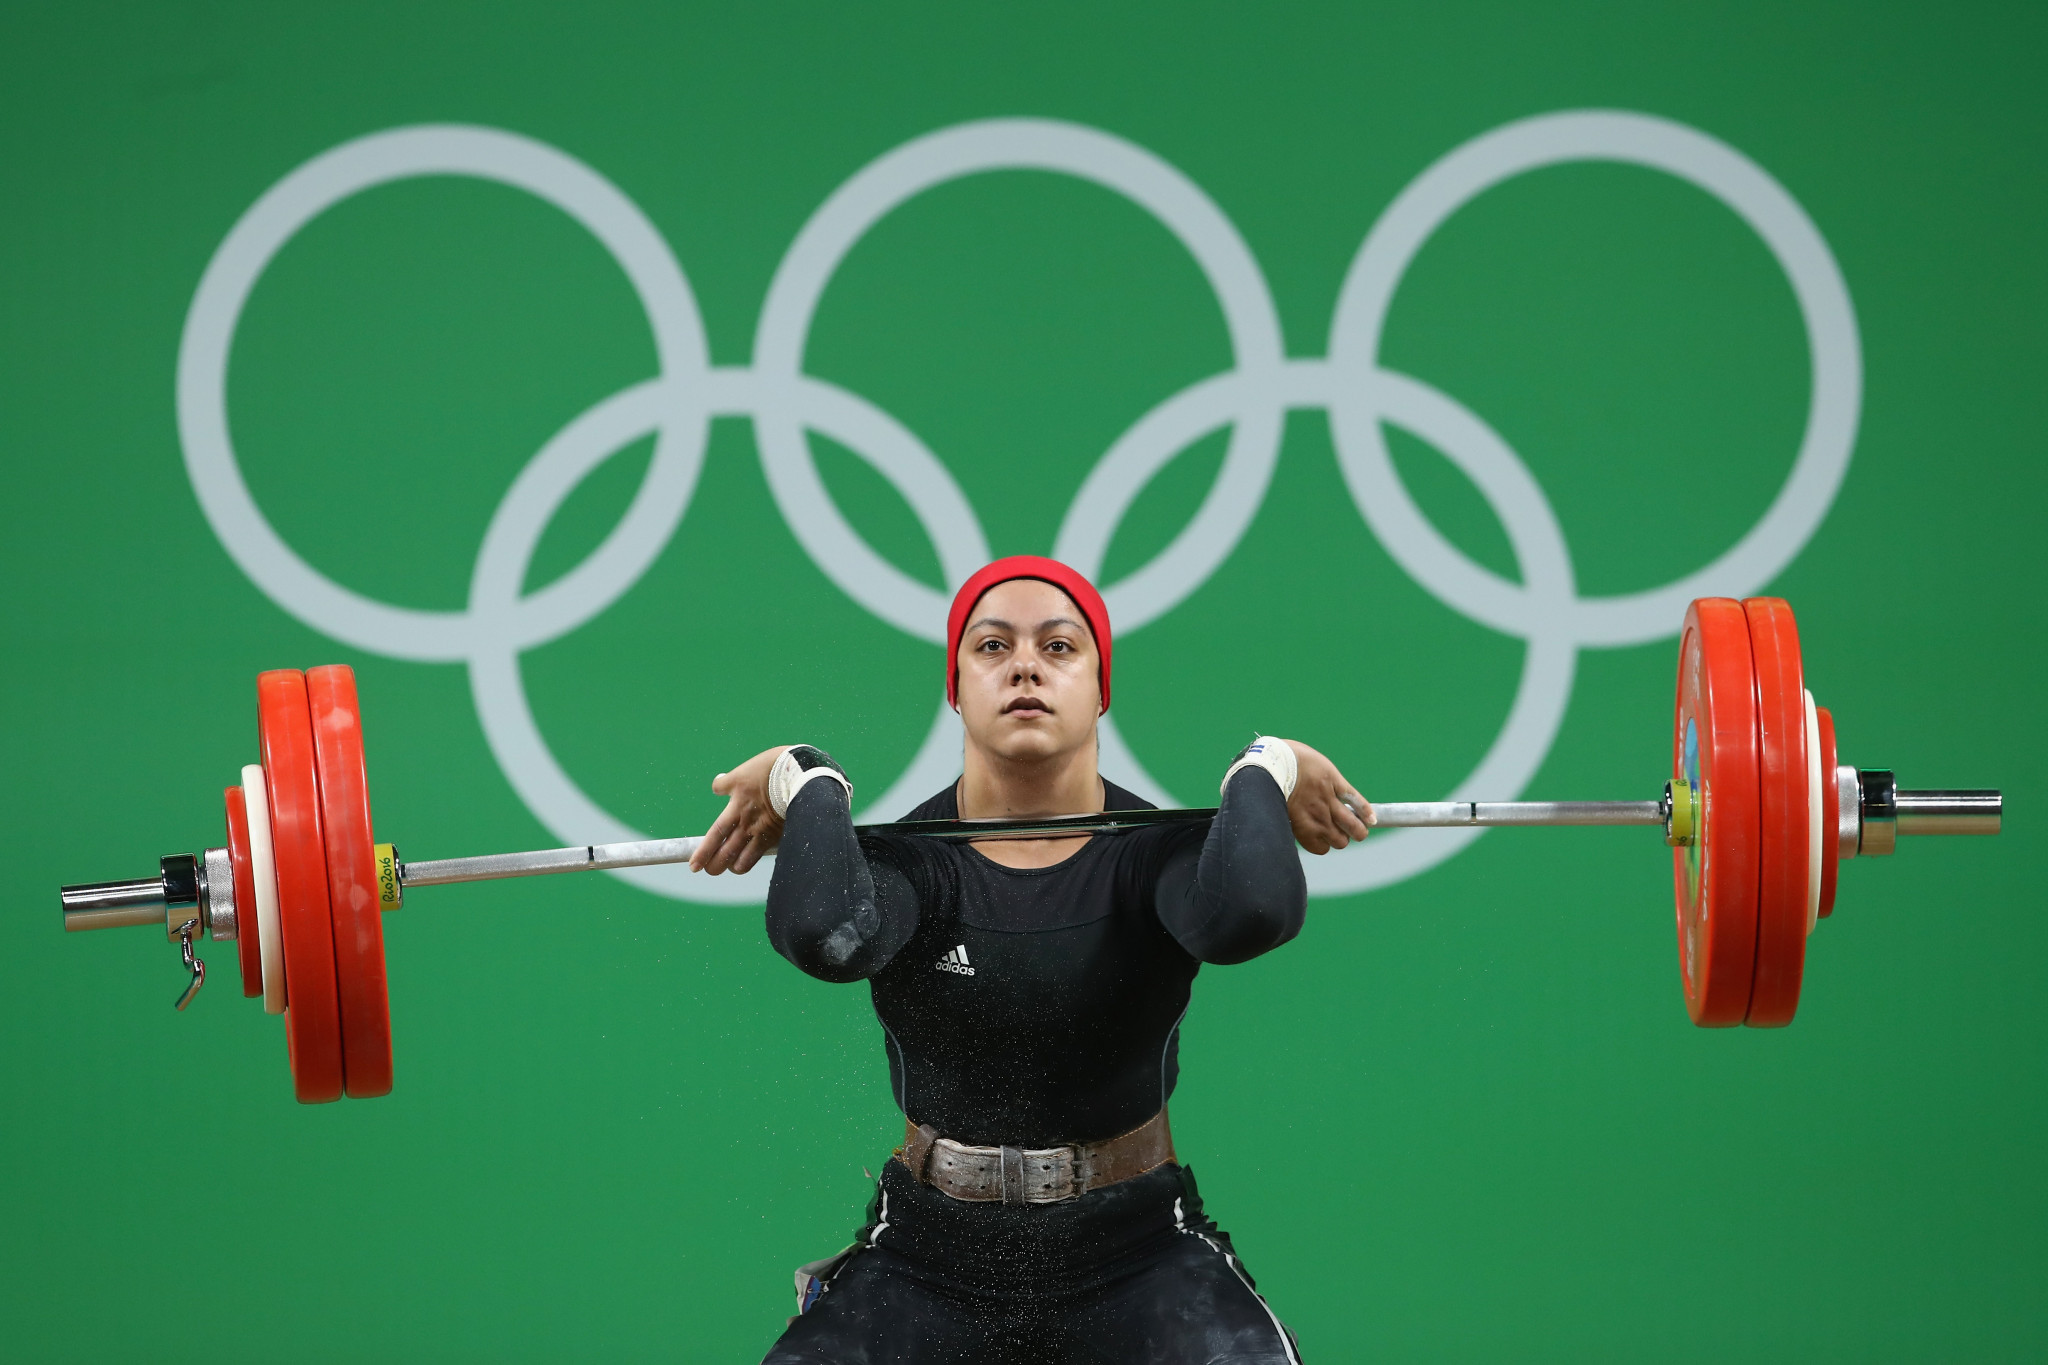 Egypt's Sara Ahmed is the first woman from an Arab country to win an Olympic weightlifting medal ©Getty Images